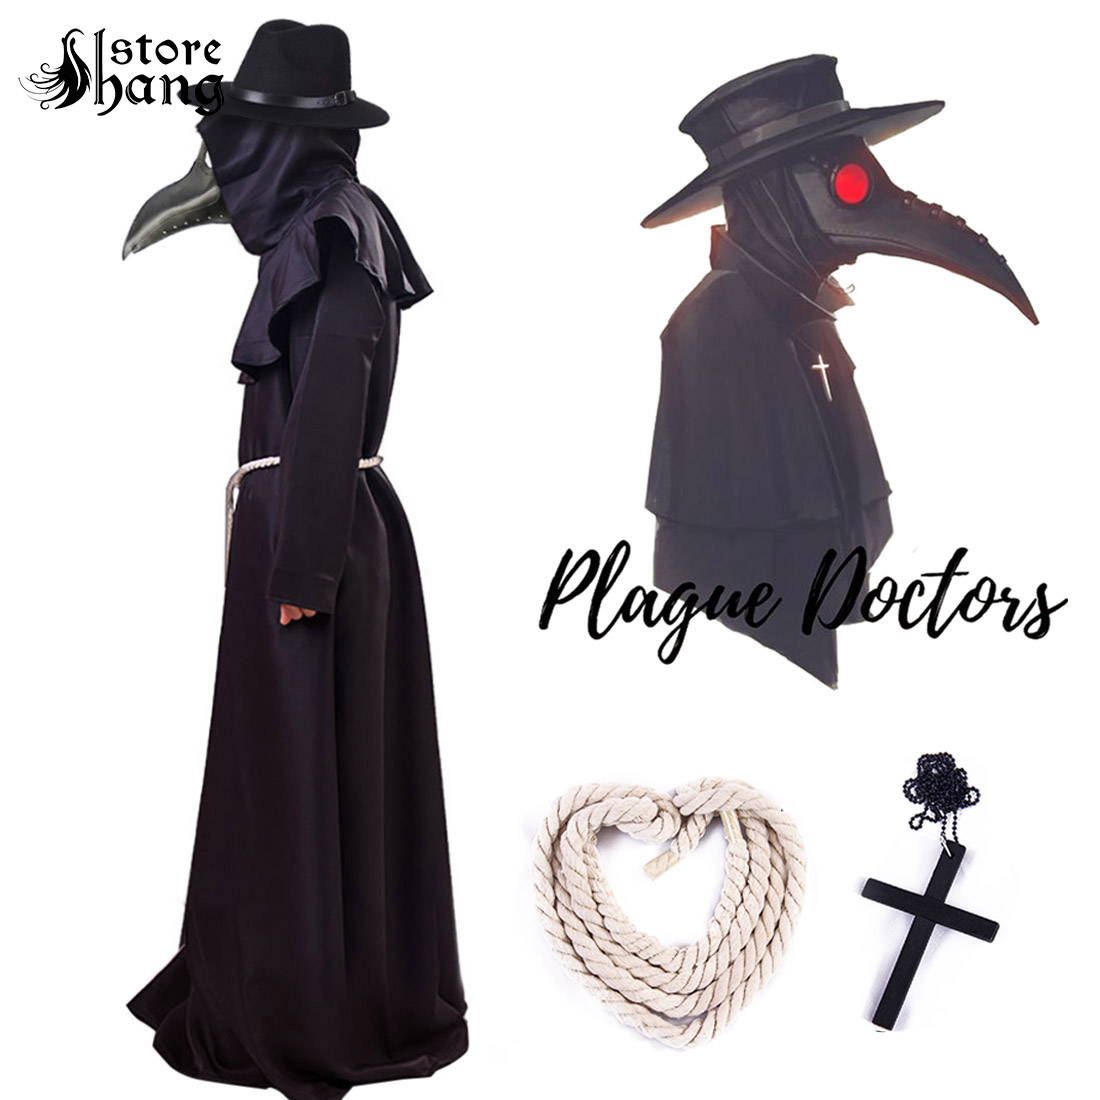 Plague Doctor Cosplay Costume Steampunk Medieval Hooded Robe Mask Hat Dr Plague Role Play Outift Adult Halloween Fancy Dress